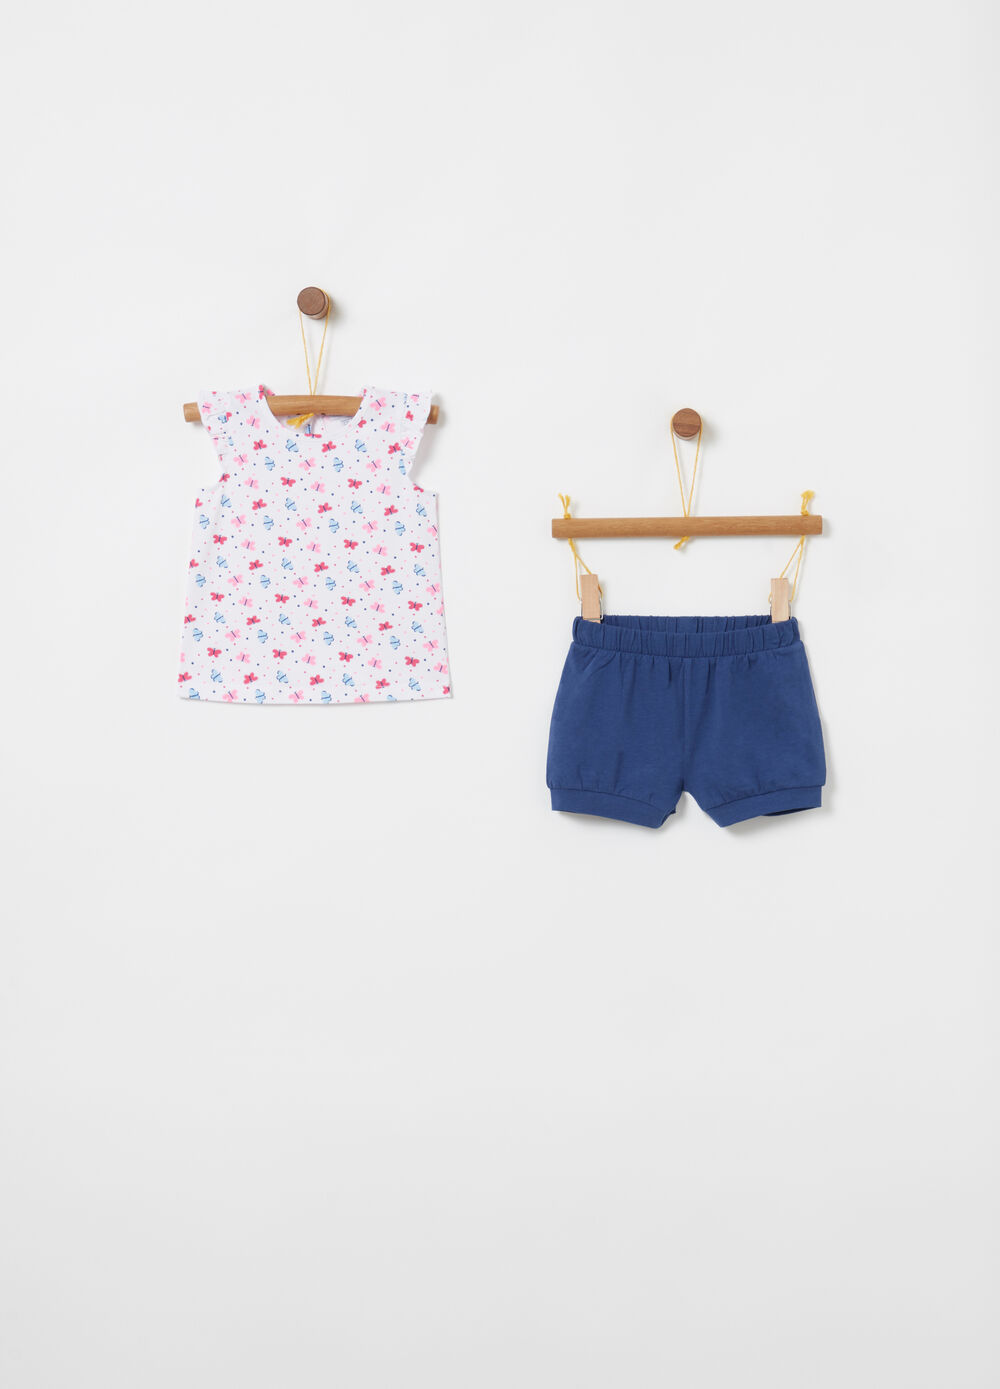 Jogging set t-shirt shorts rouches e pois